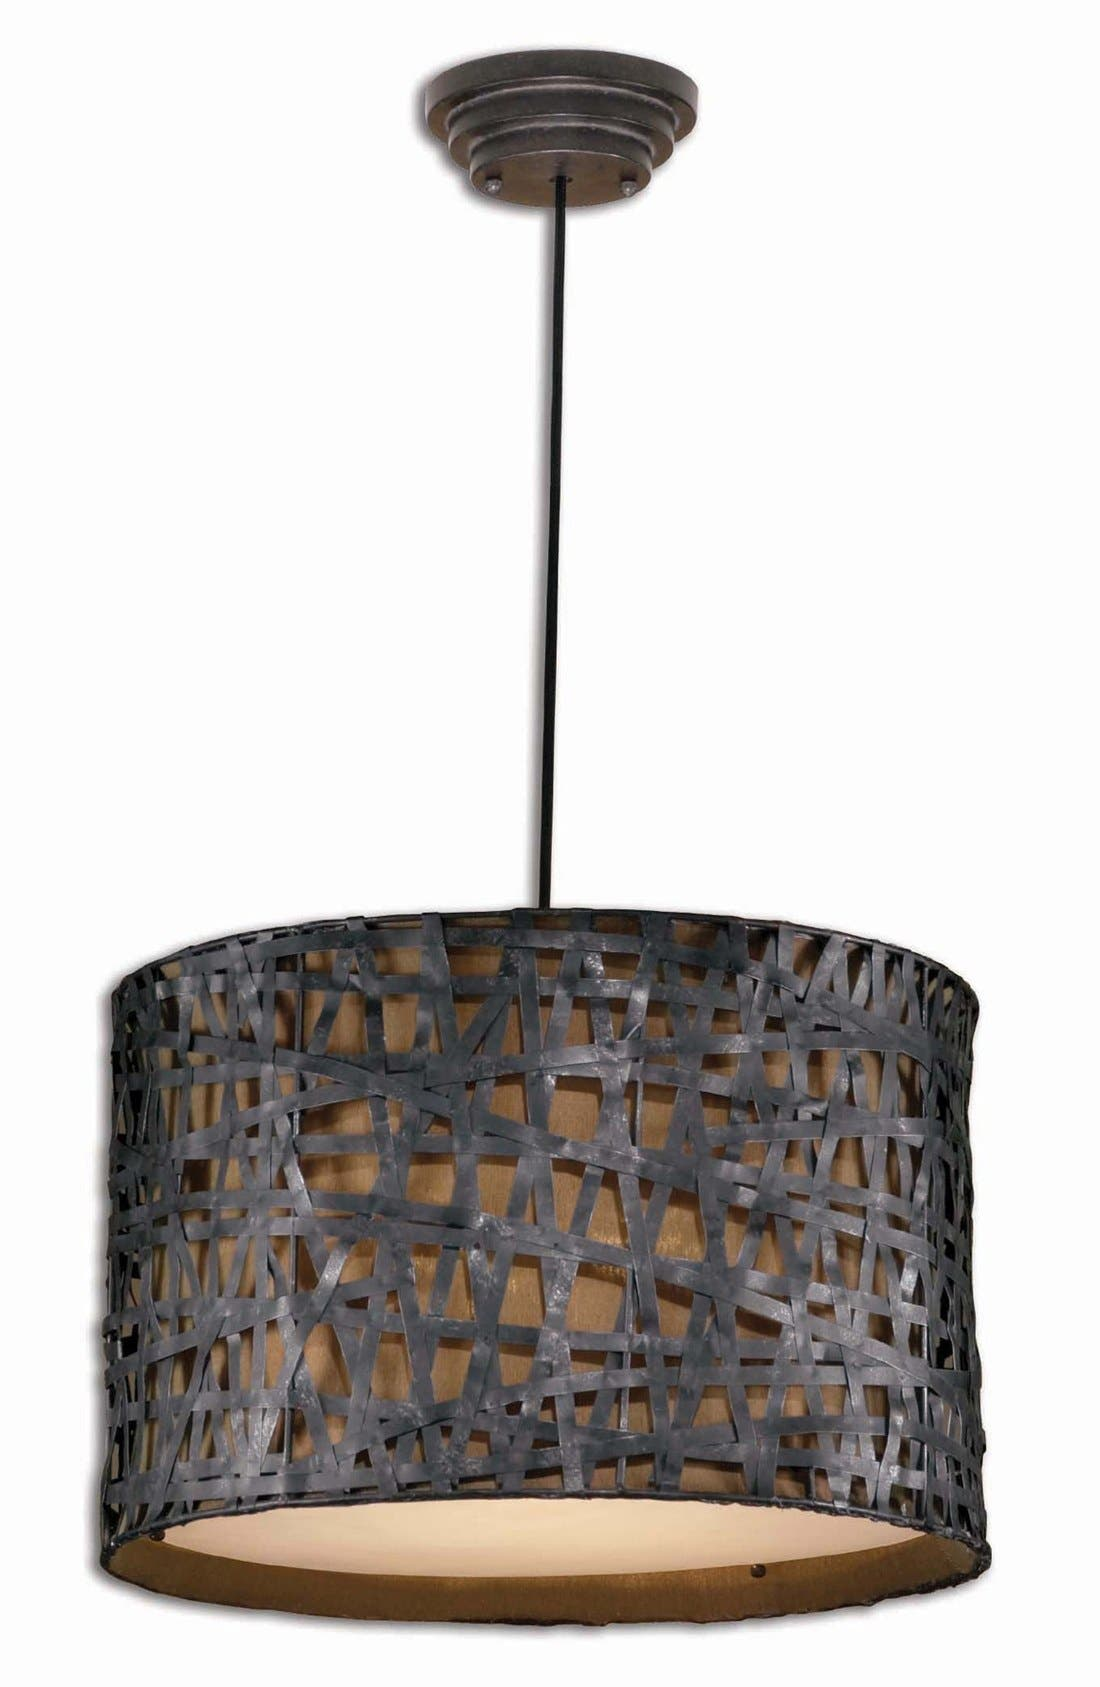 'Alita' Drum Pendant Light,                             Main thumbnail 1, color,                             001